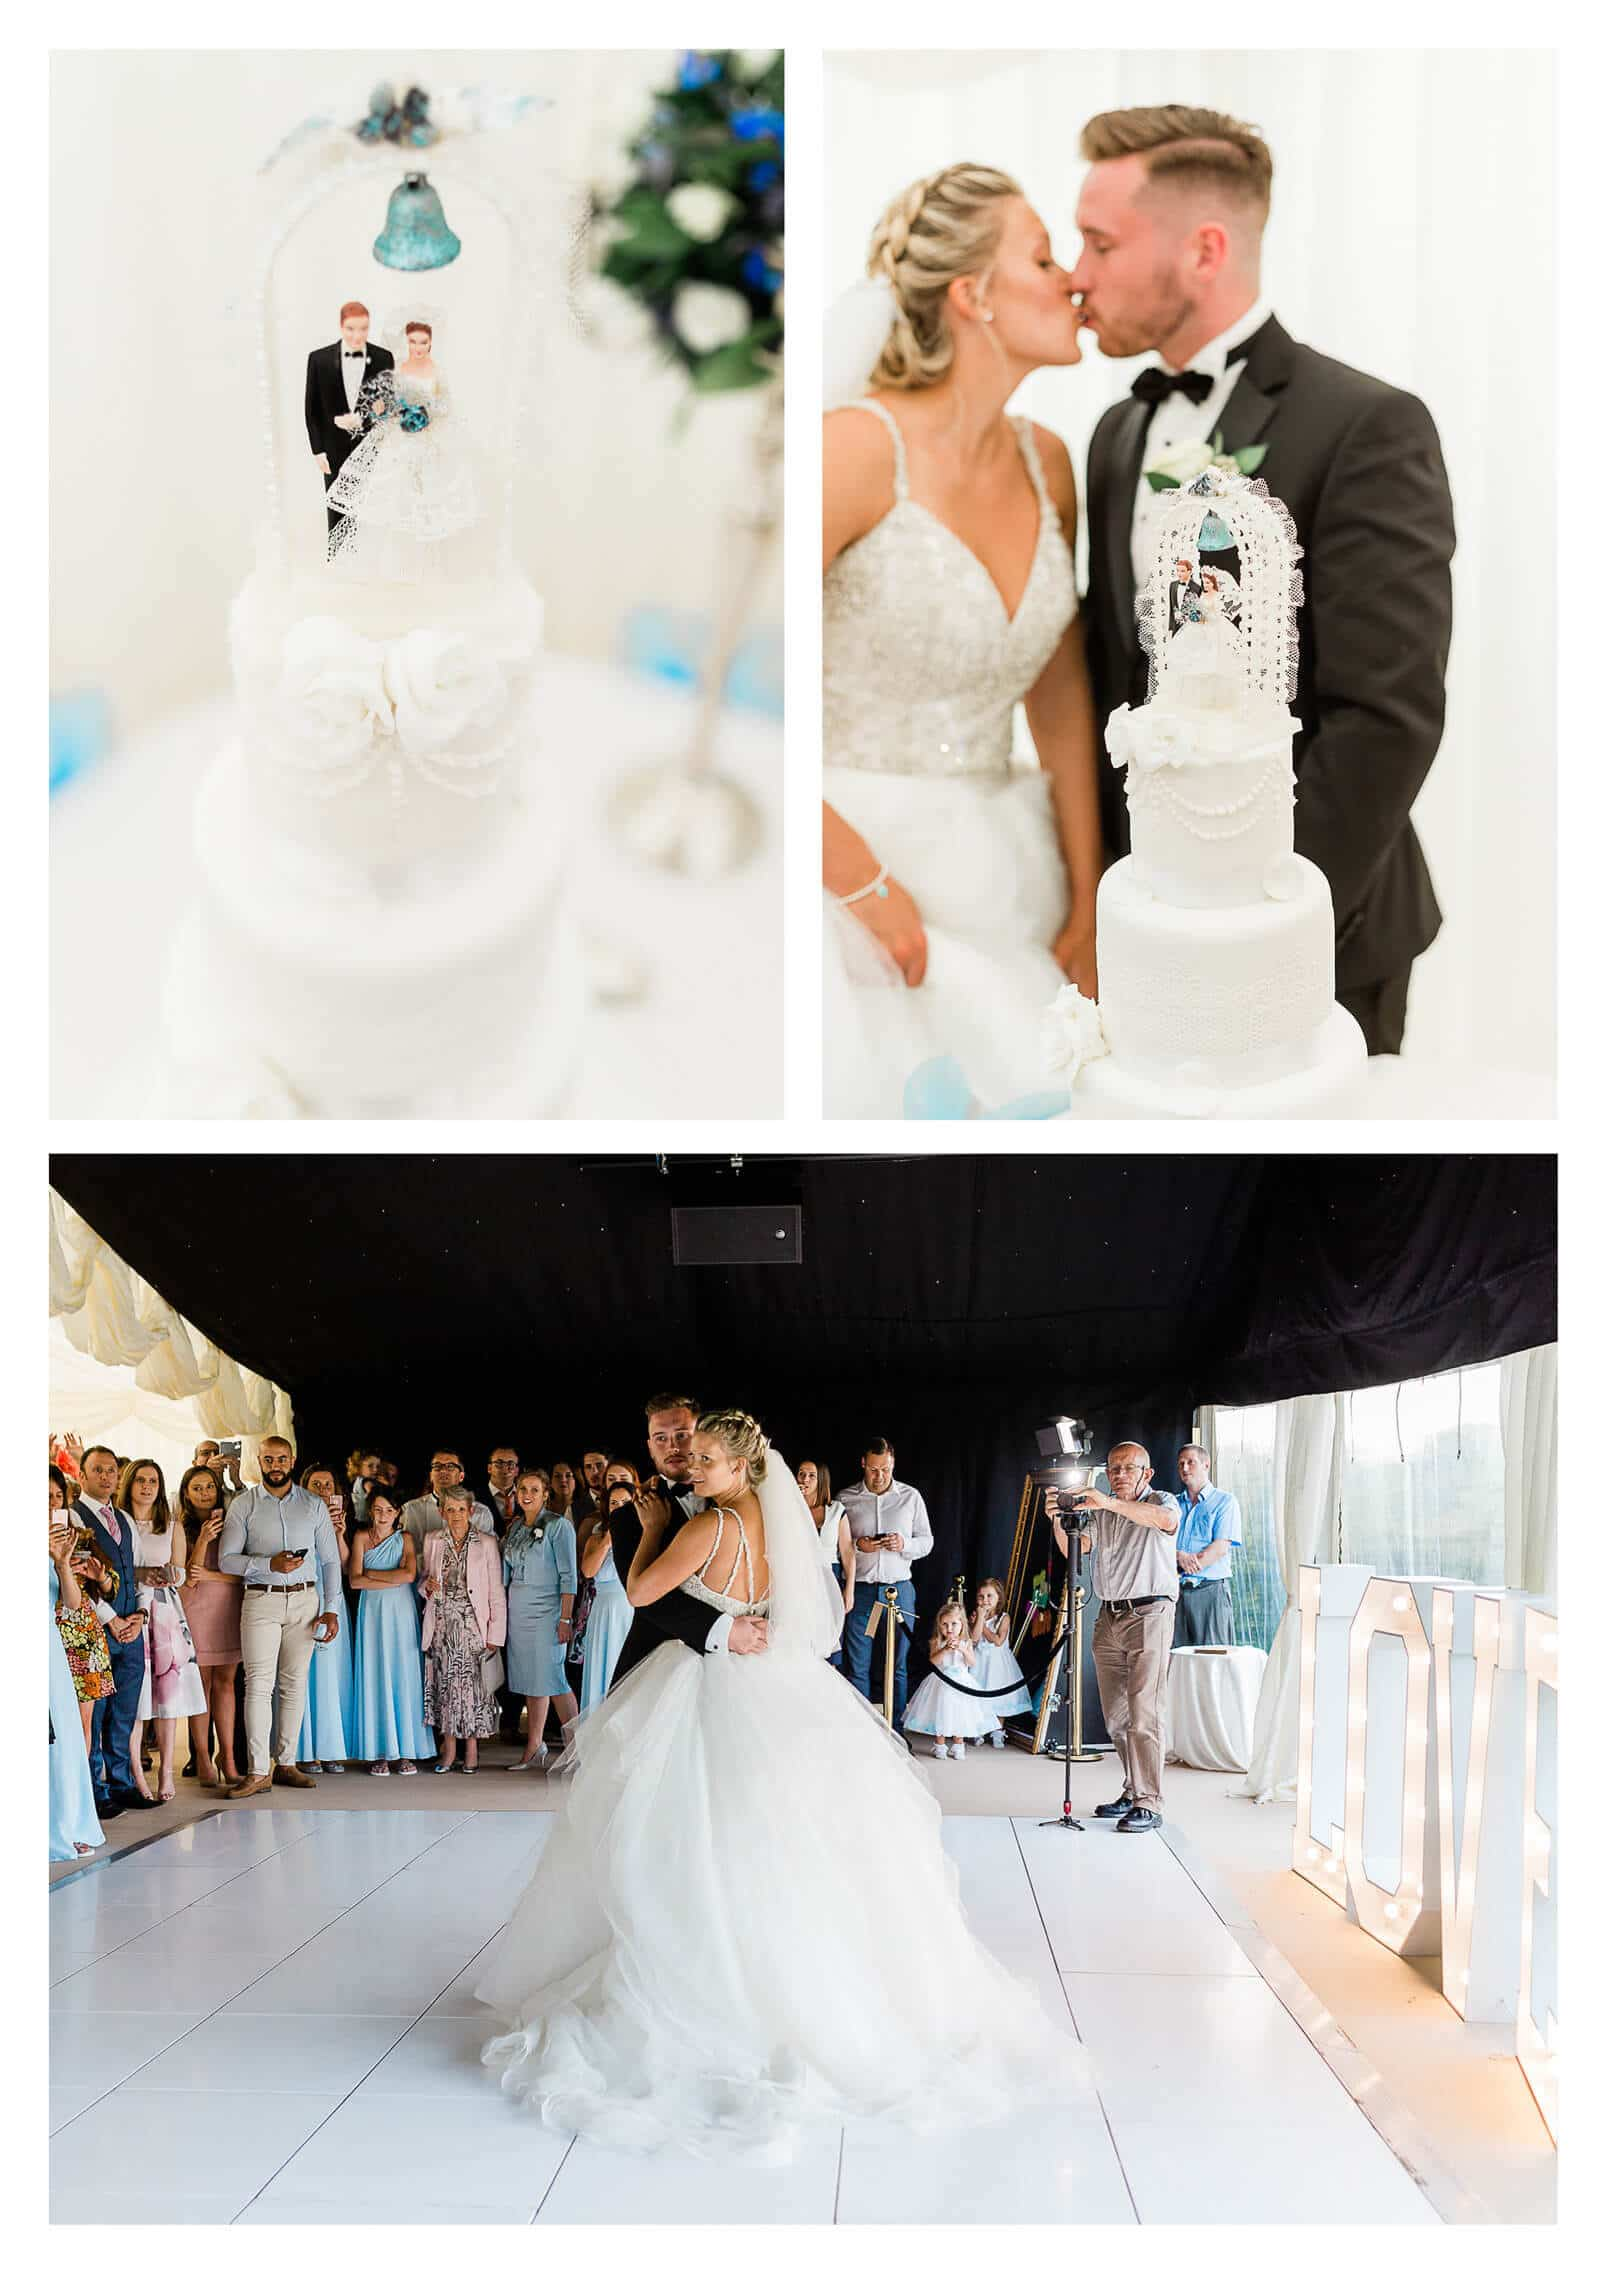 Cake and first dance at Zinnia Gardens | wedding photographer